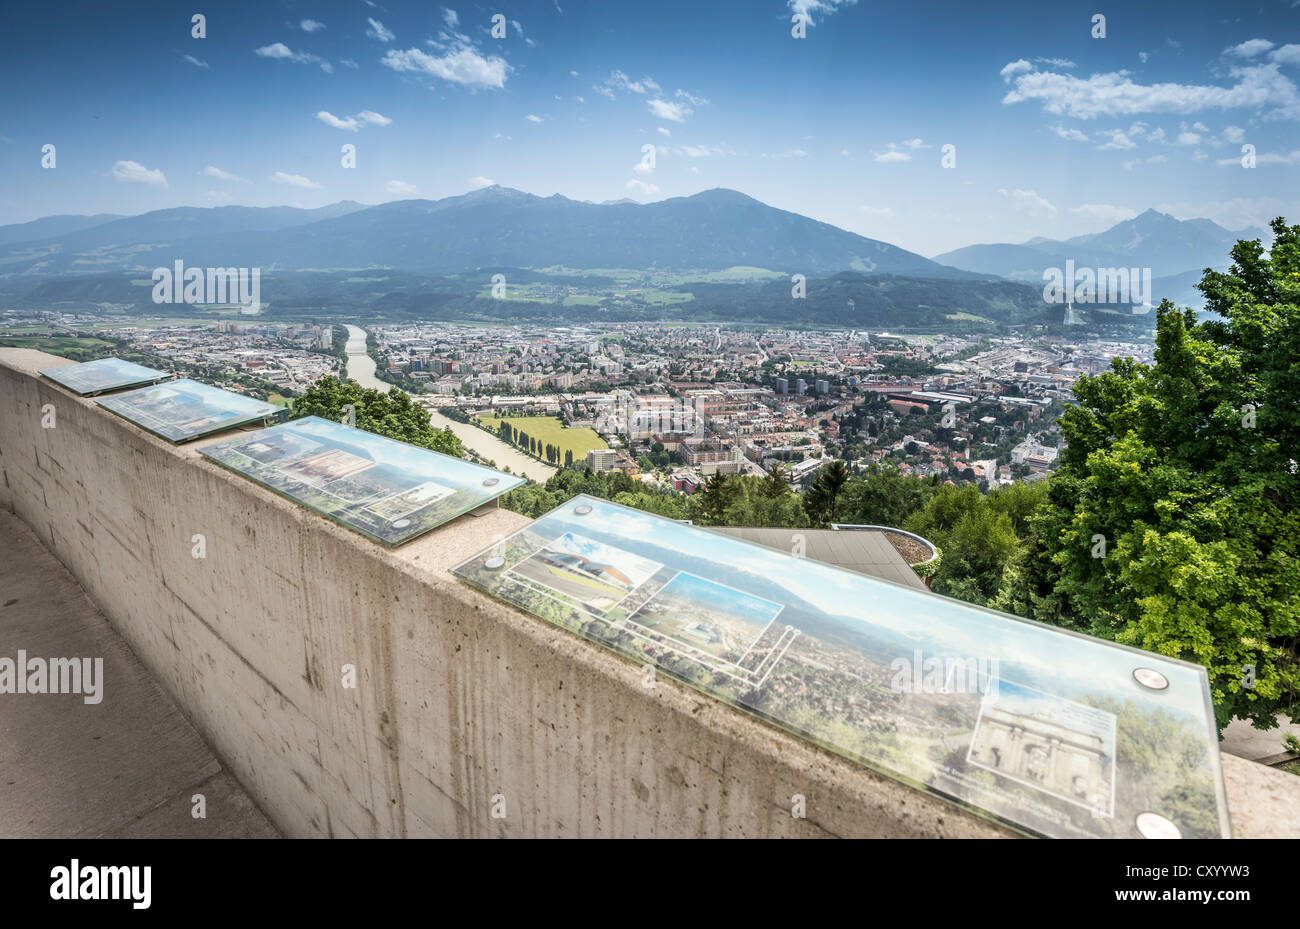 View over the city with info panels, viewing platform at Hungerburgbahn, hybrid funicular railway, built by the - Stock Image